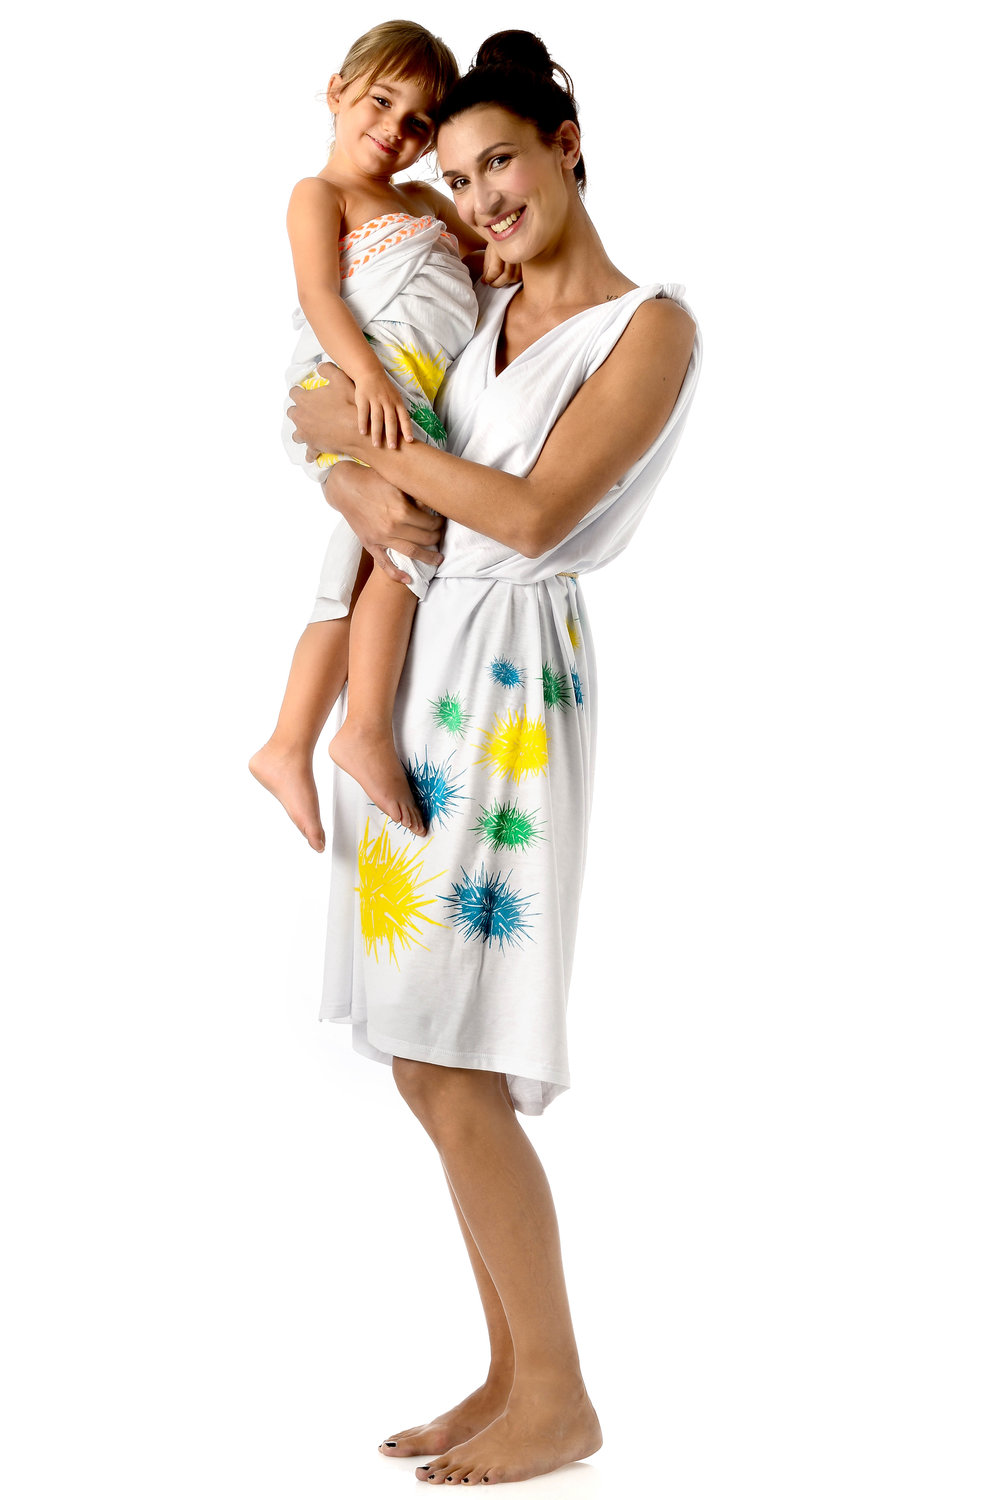 urchins-multi-color-design-on-white-cotton-kids-pareo-strapless-wraped-dress-matching-mother-daughetr-style.jpg